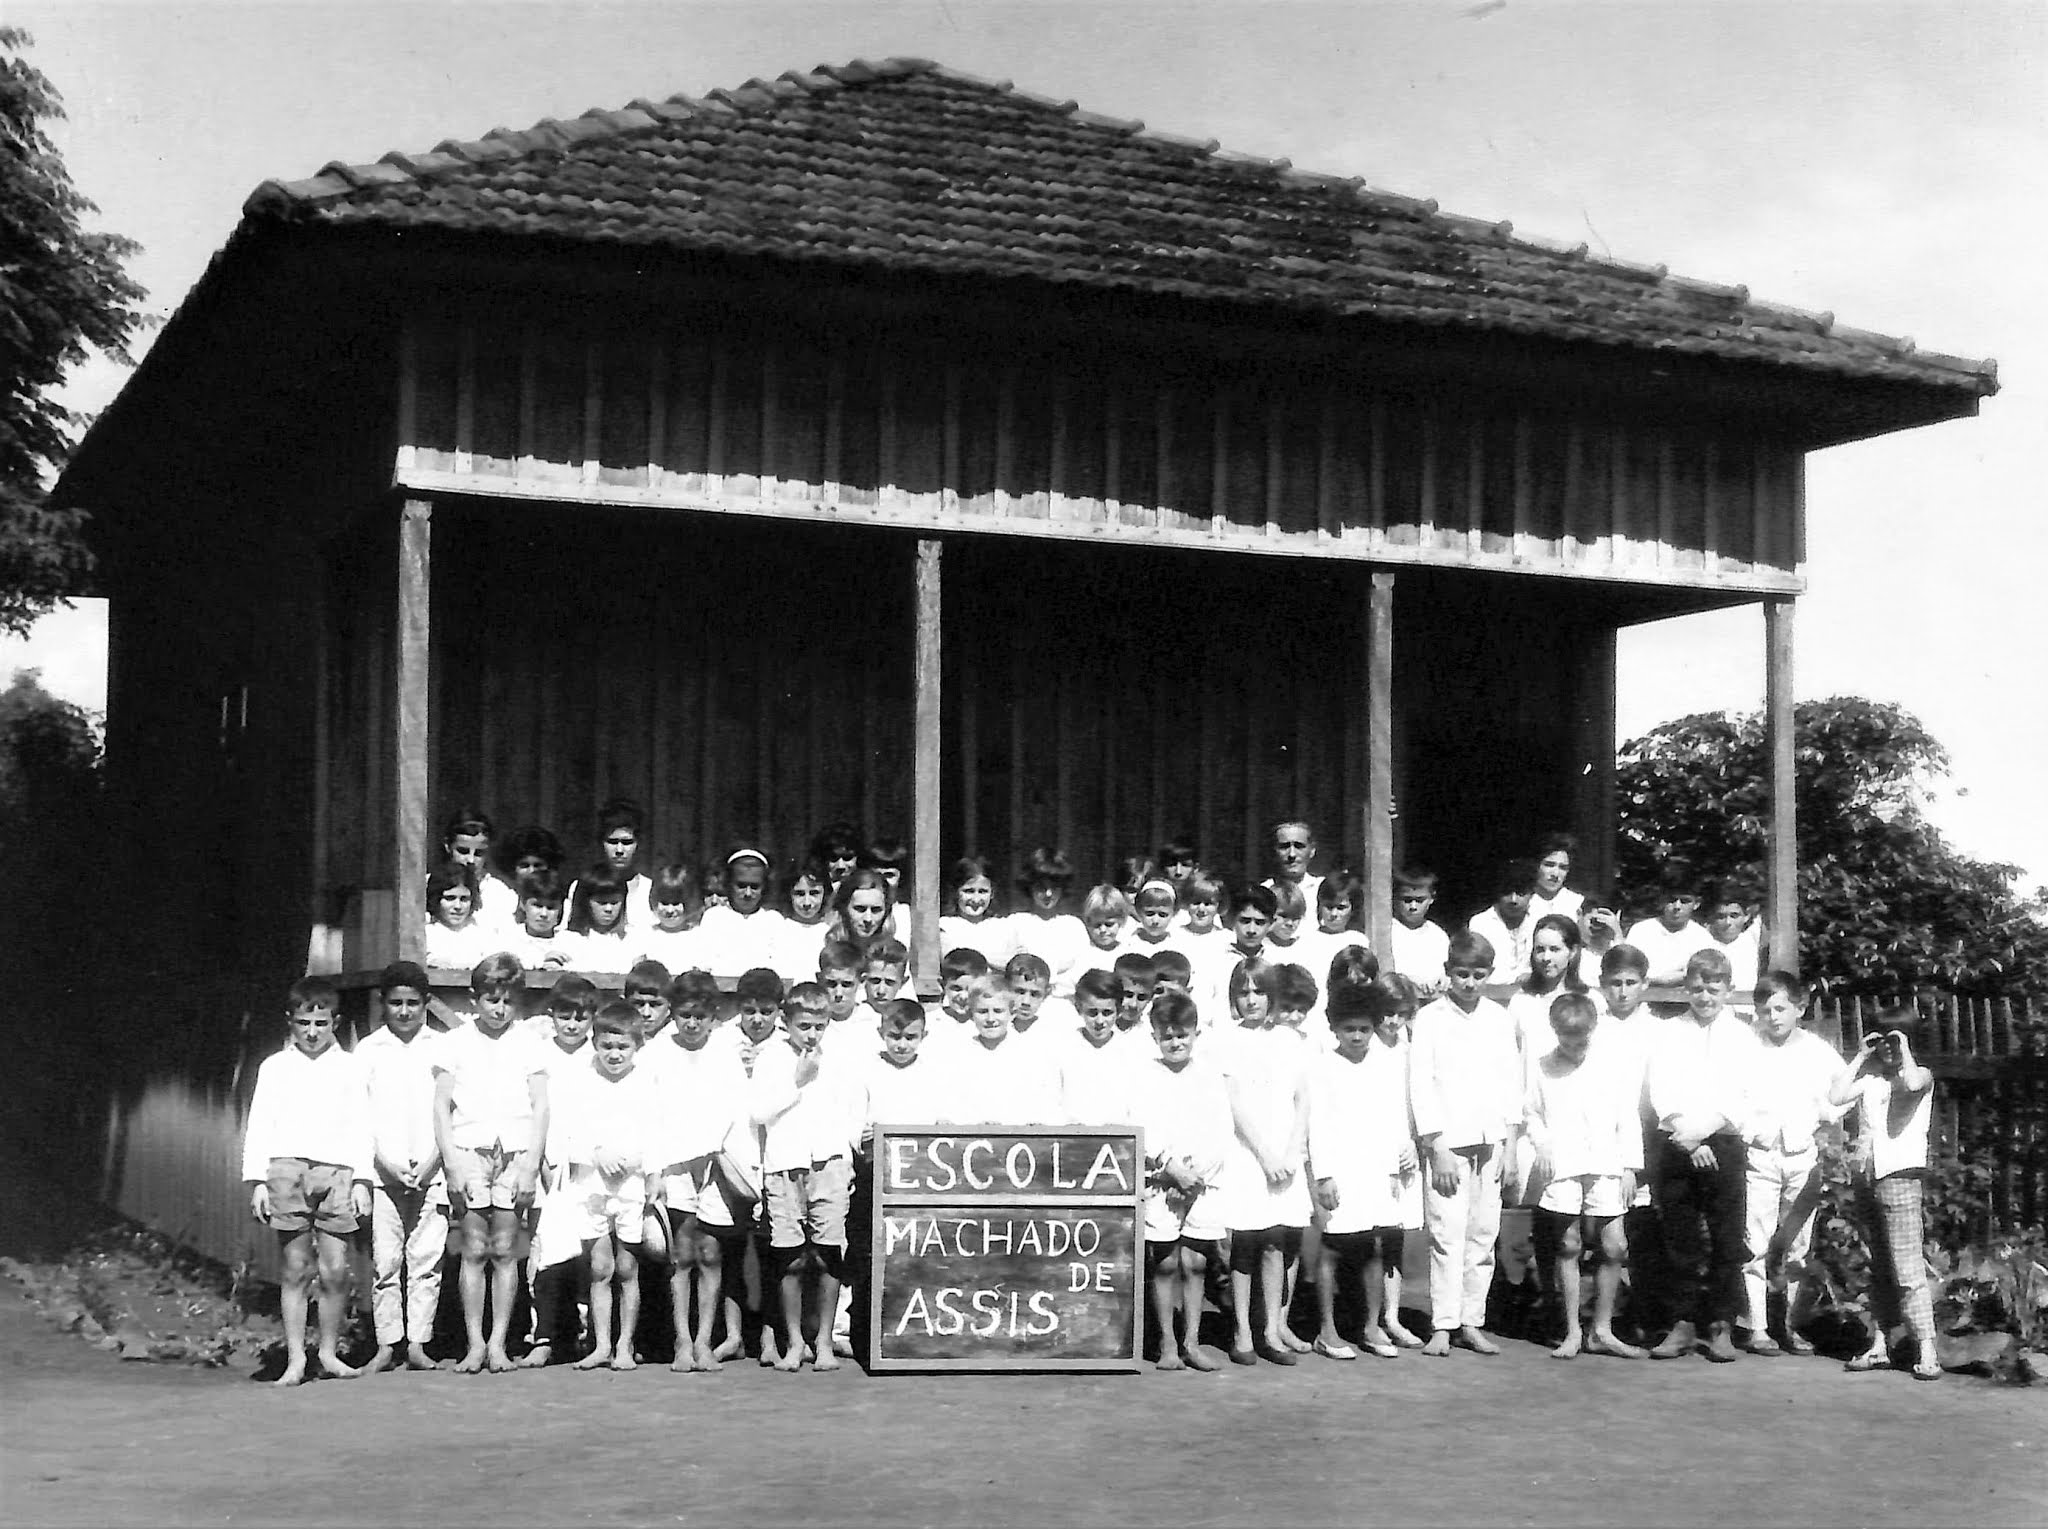 Escola Municipal Machado de Assis - 1968